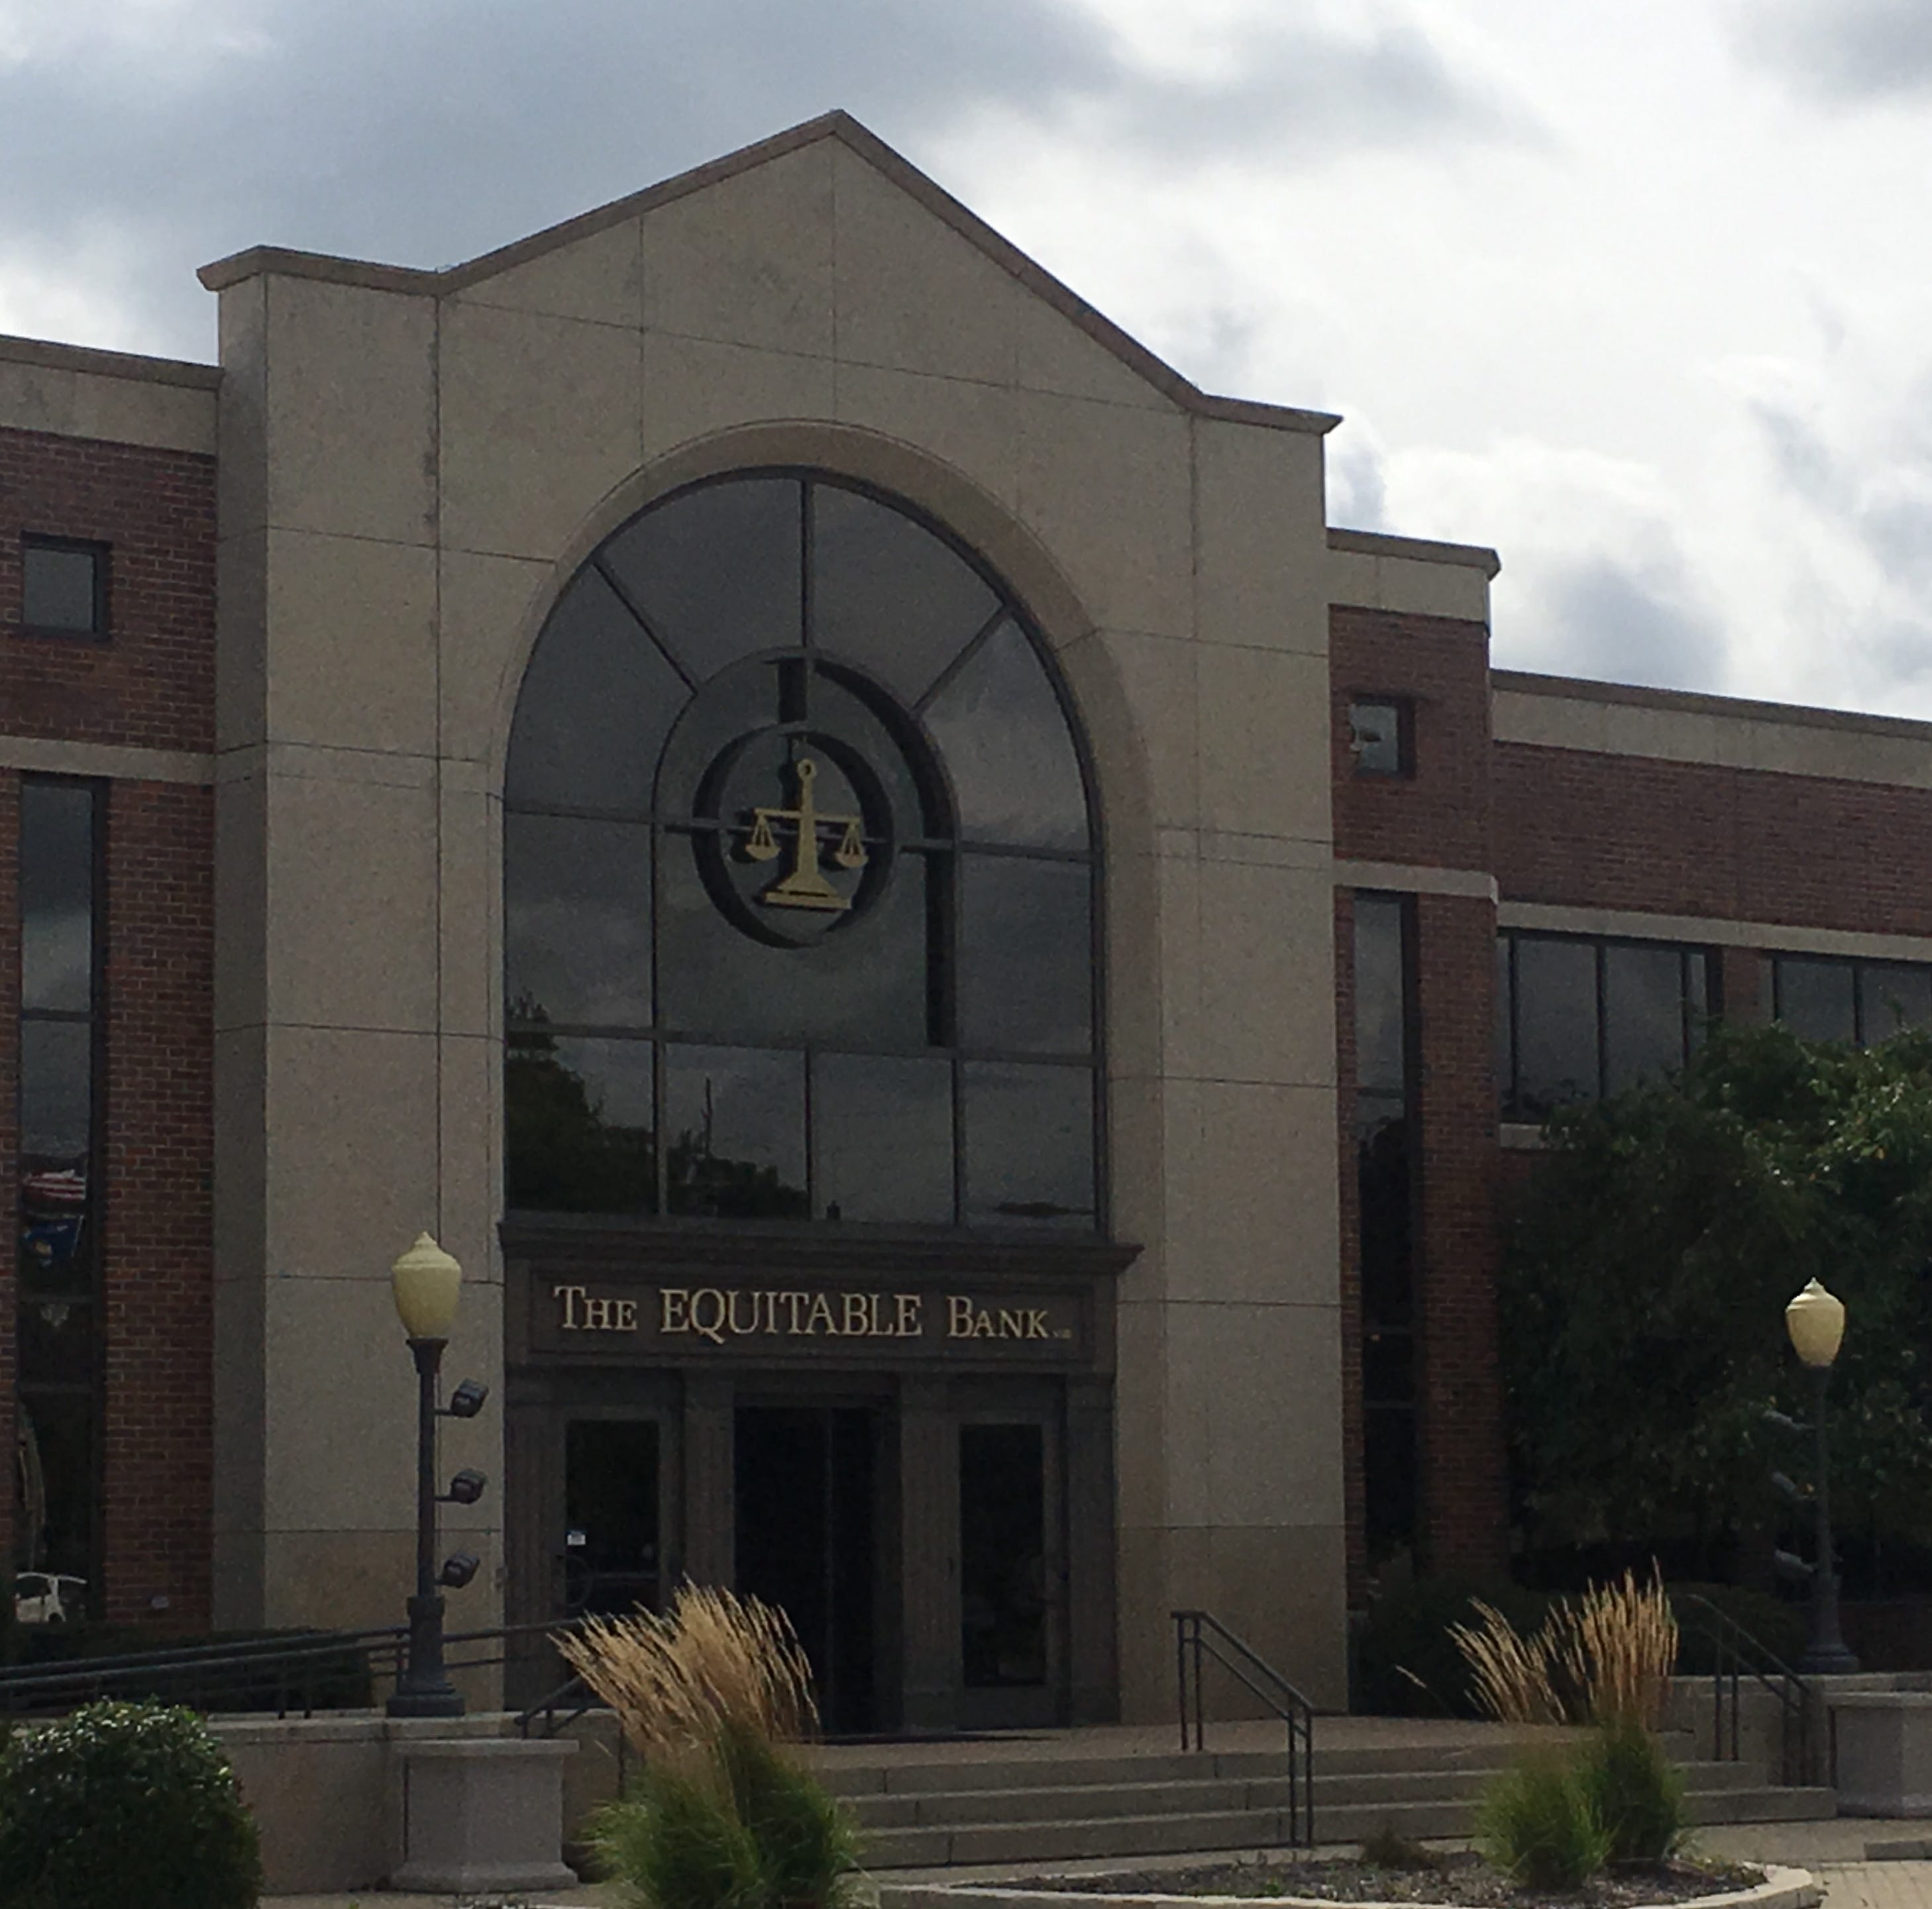 Wauwatosa-based The Equitable Bank plans to...